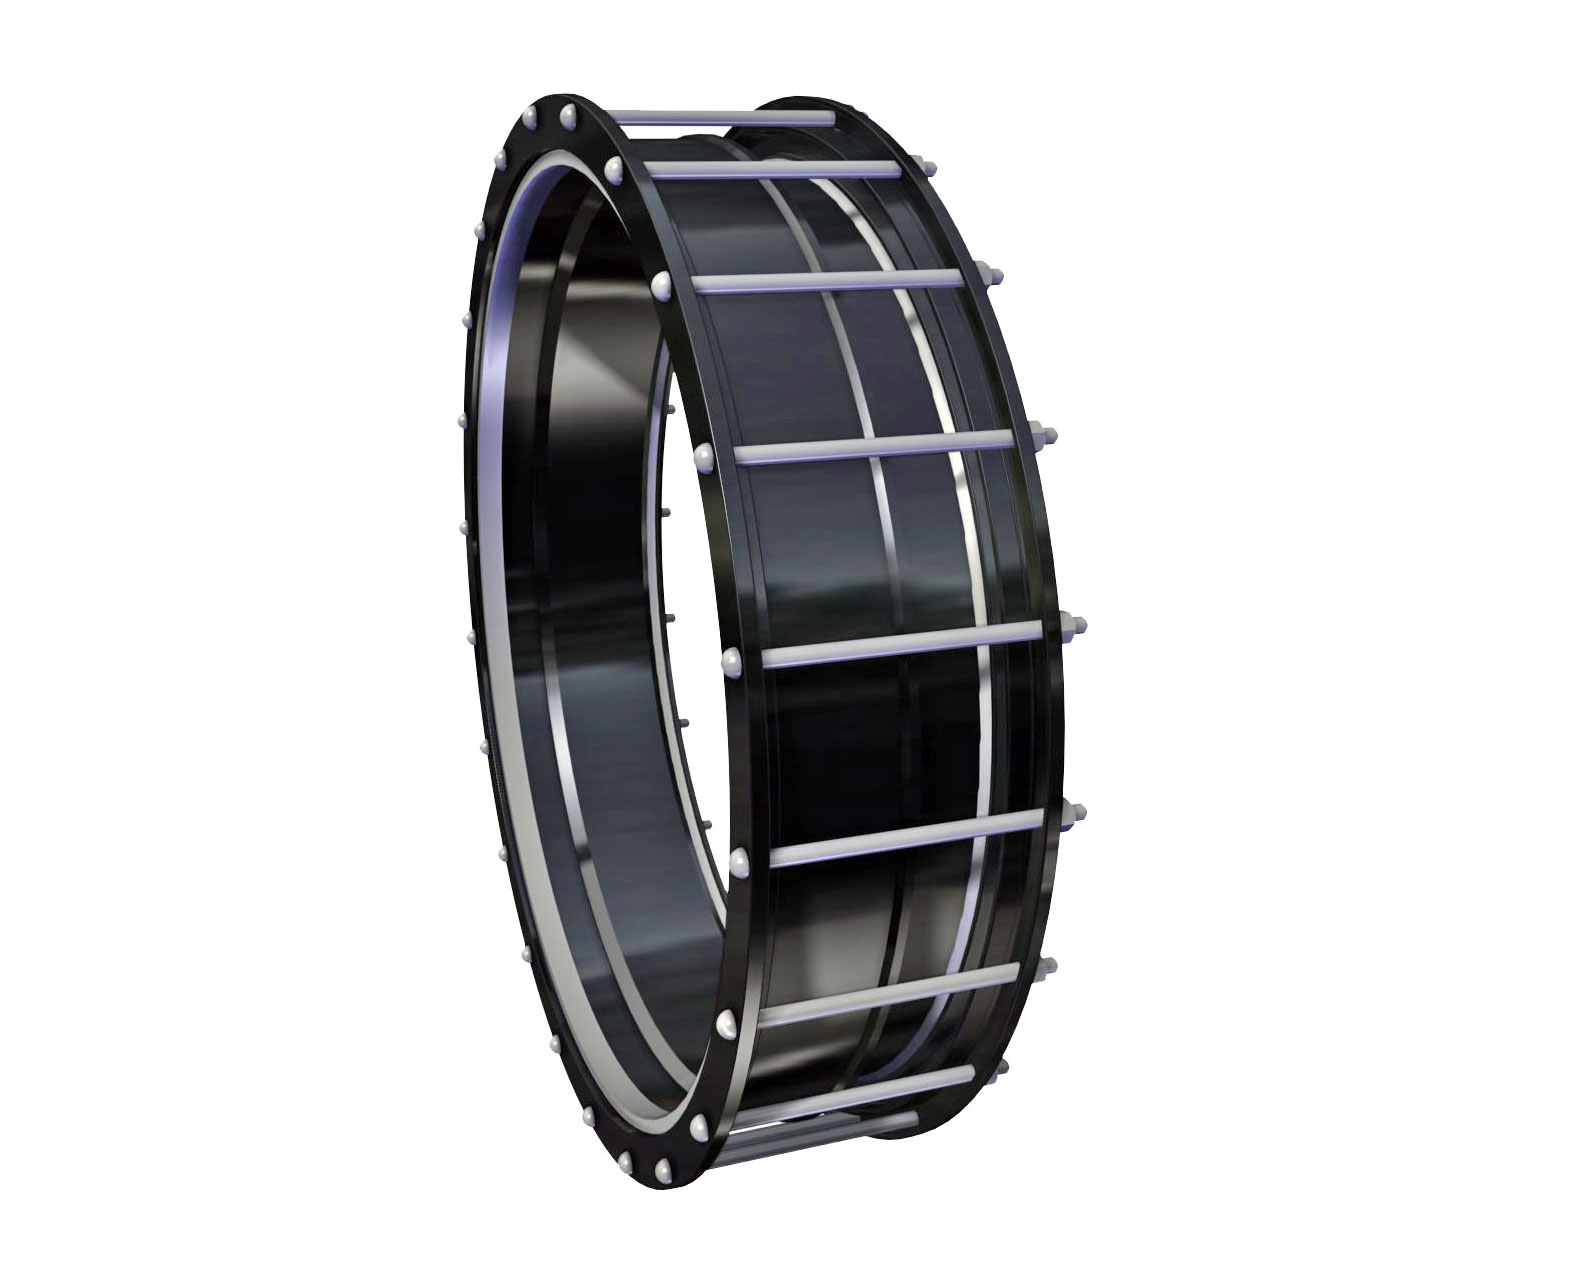 TC400 - Fabricated steel transition pipe coupling.Nominal Sizes12 - 96 inches,larger sizes available upon request'Working PressureSee product submittalPipe CompatibilitySteel, cast iron, asbestos cement, plastic and other types of pipe